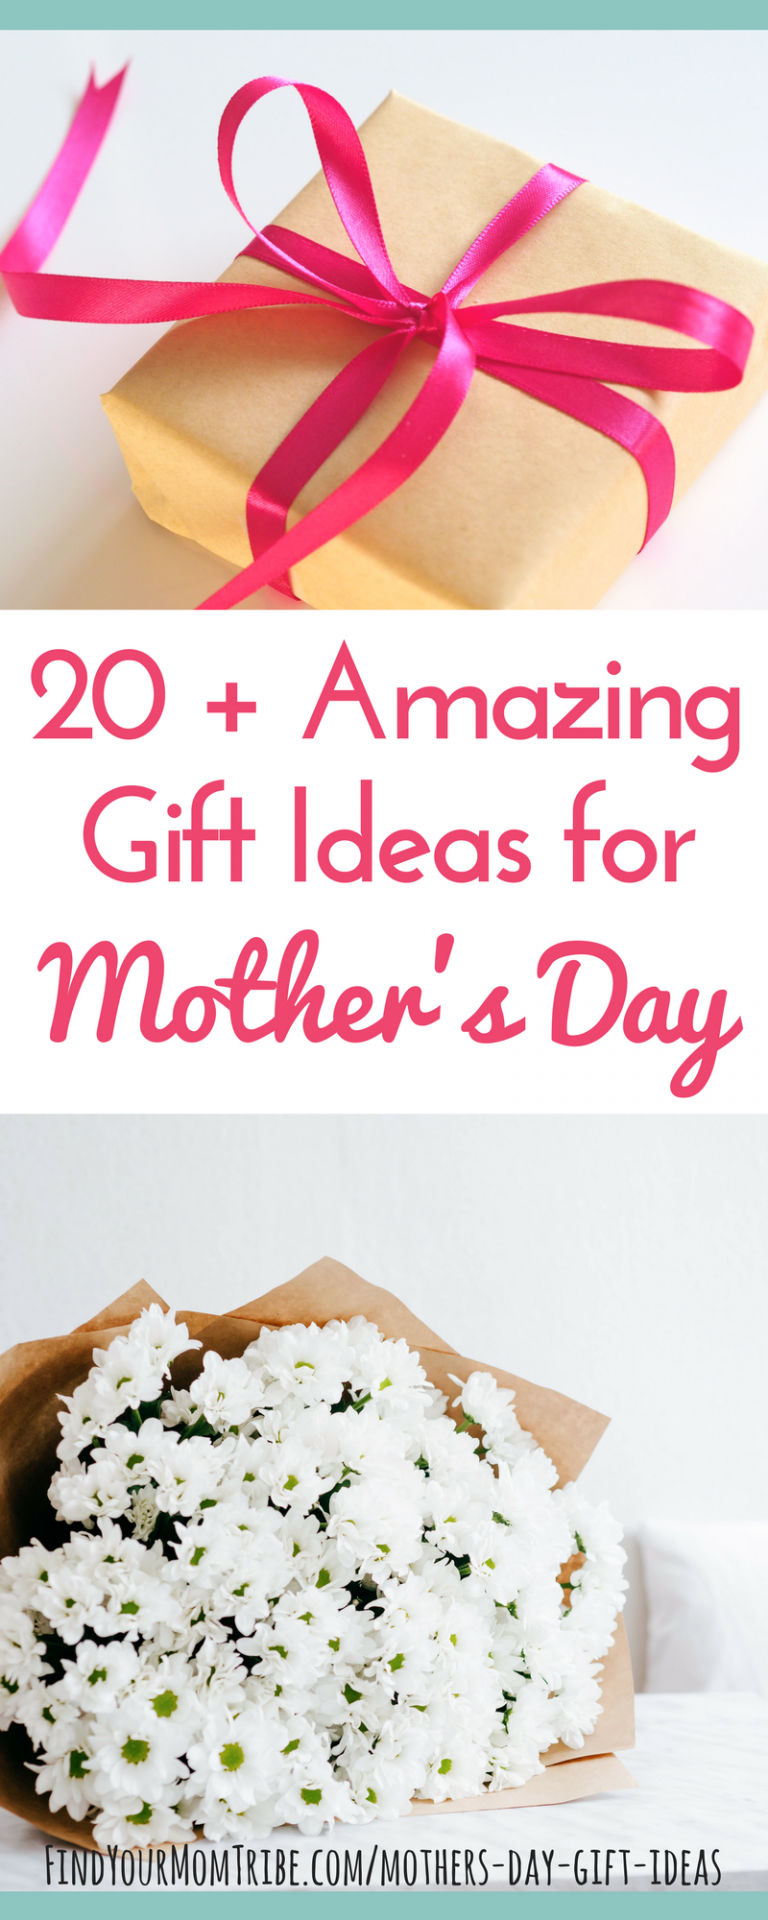 Self Control For Moms 8 Ways To Stay Calm Instead Of Losing Your Cool Mother Day Gifts Mothers Day Mother S Day Gifts